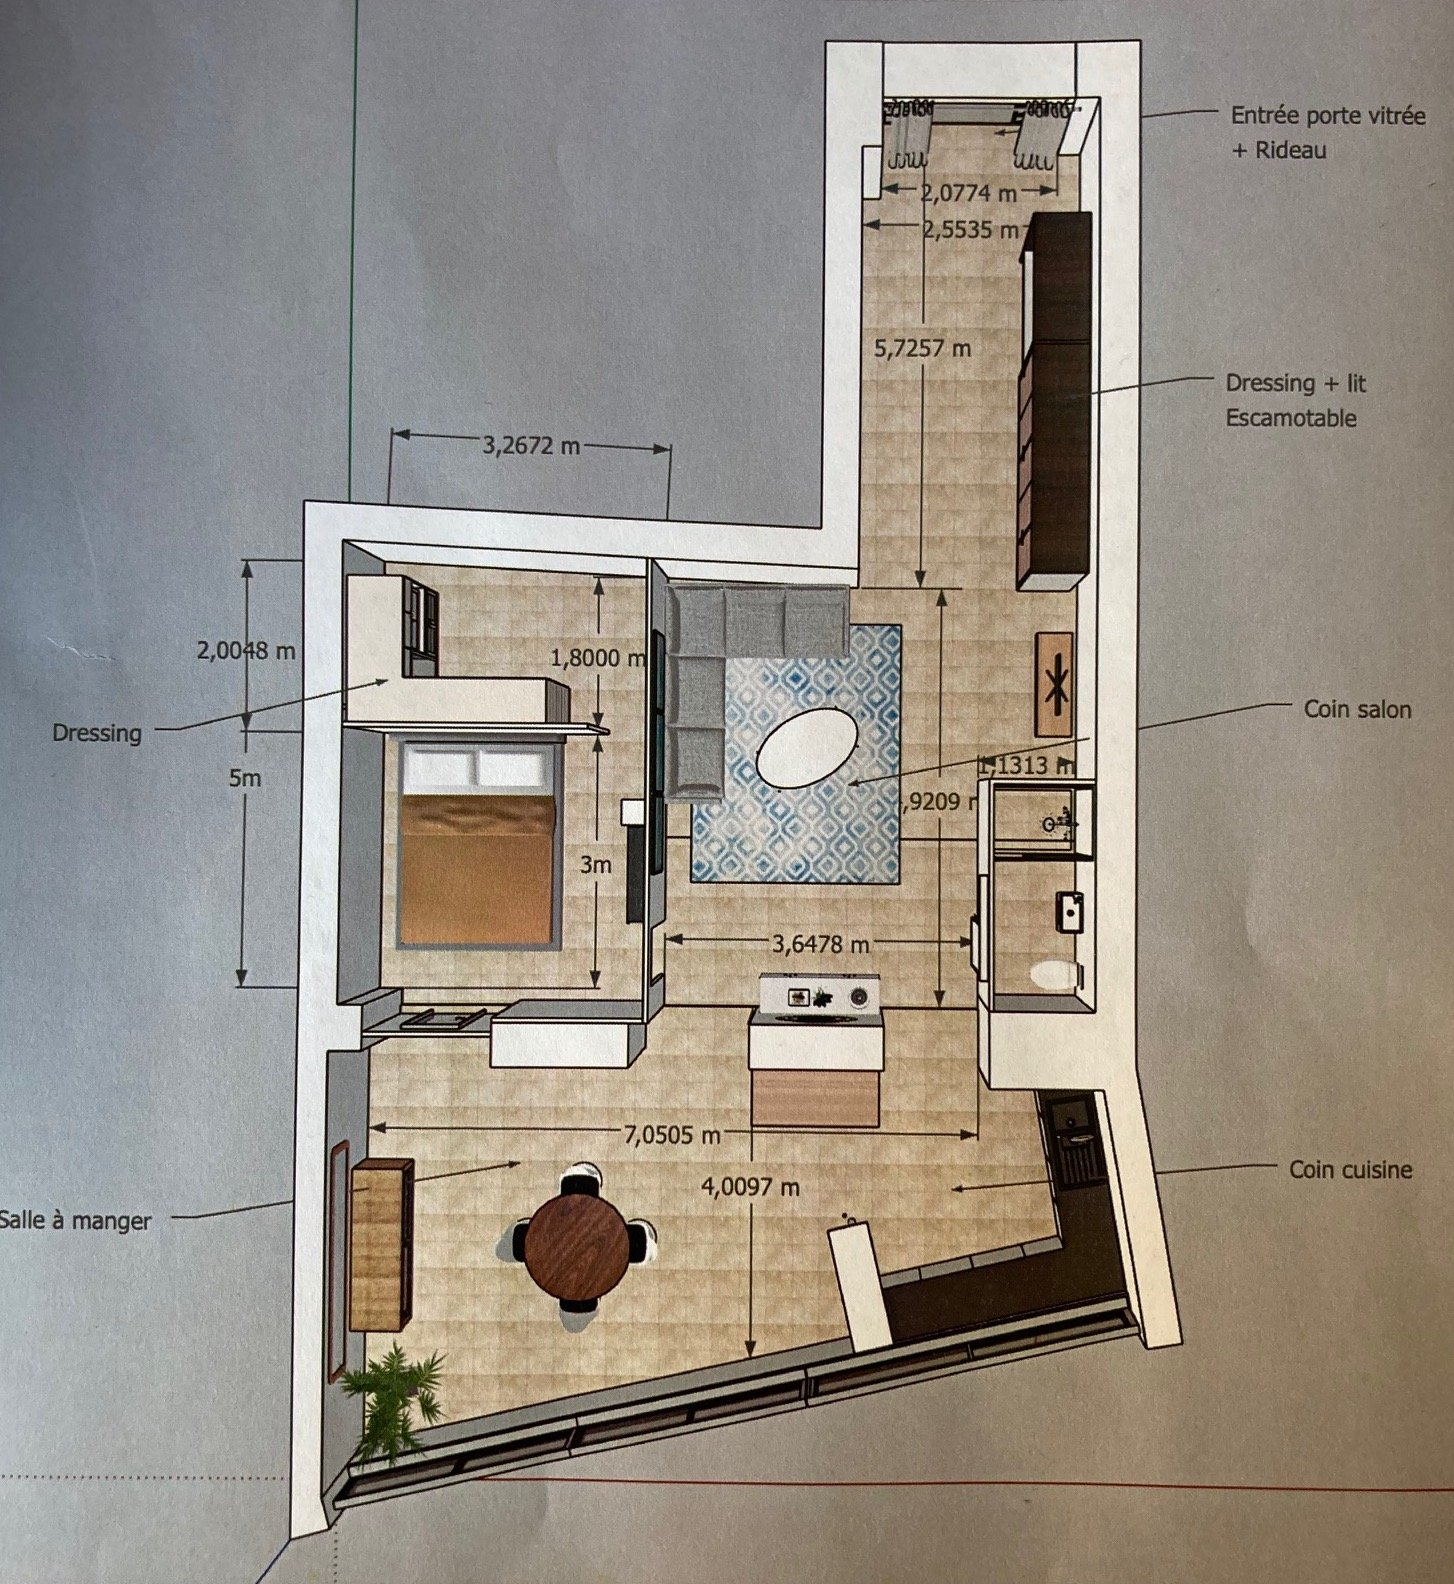 1-BR apartment plan